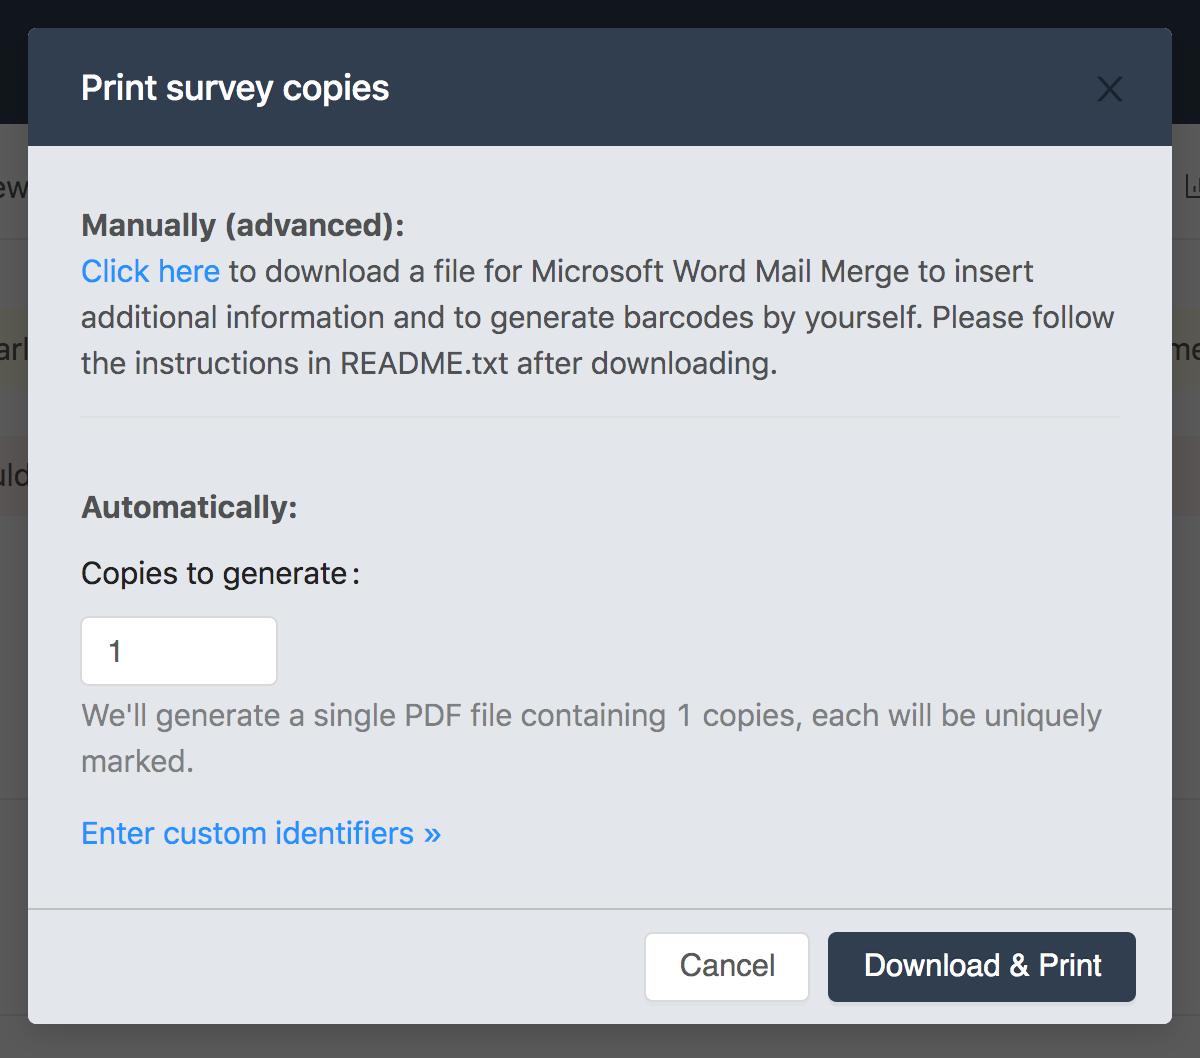 How to generate barcodes with Microsoft Word Mail Merge in